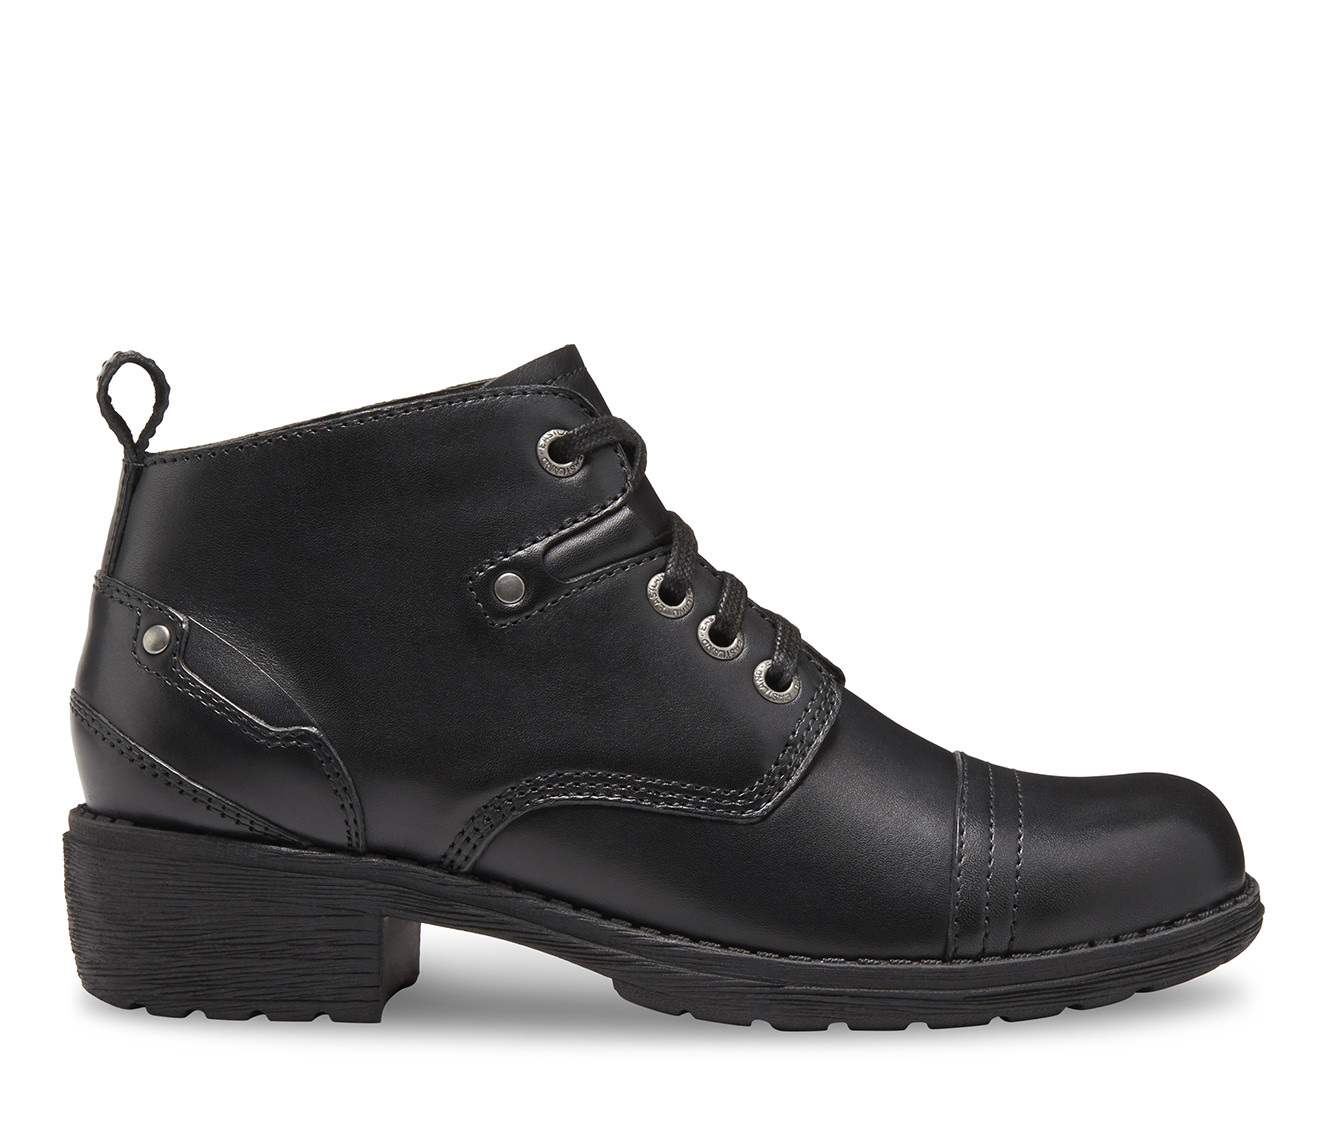 Eastland Overdrive Women's Boots (Black - Leather)